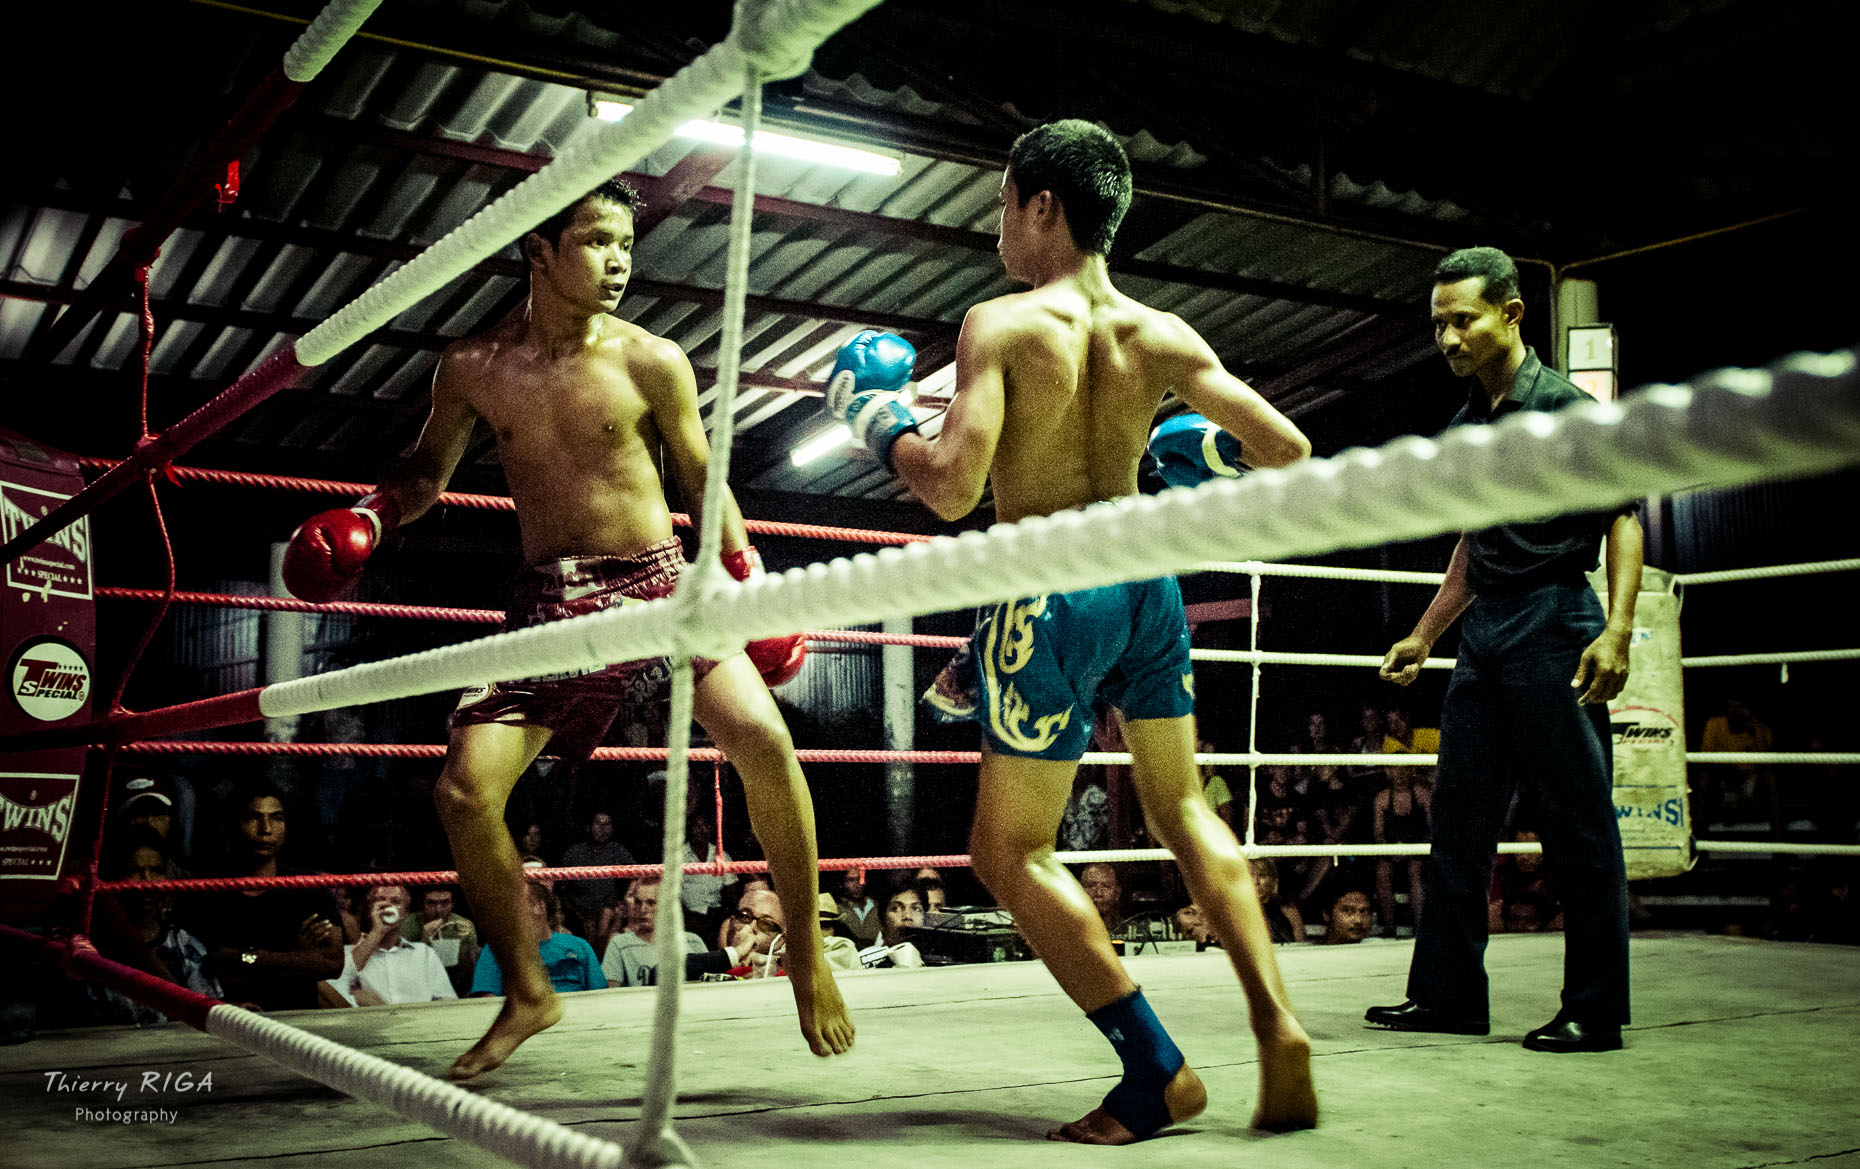 Muay_Thai_boxing_Thailand_fight_5550_Thierry_Riga.jpg